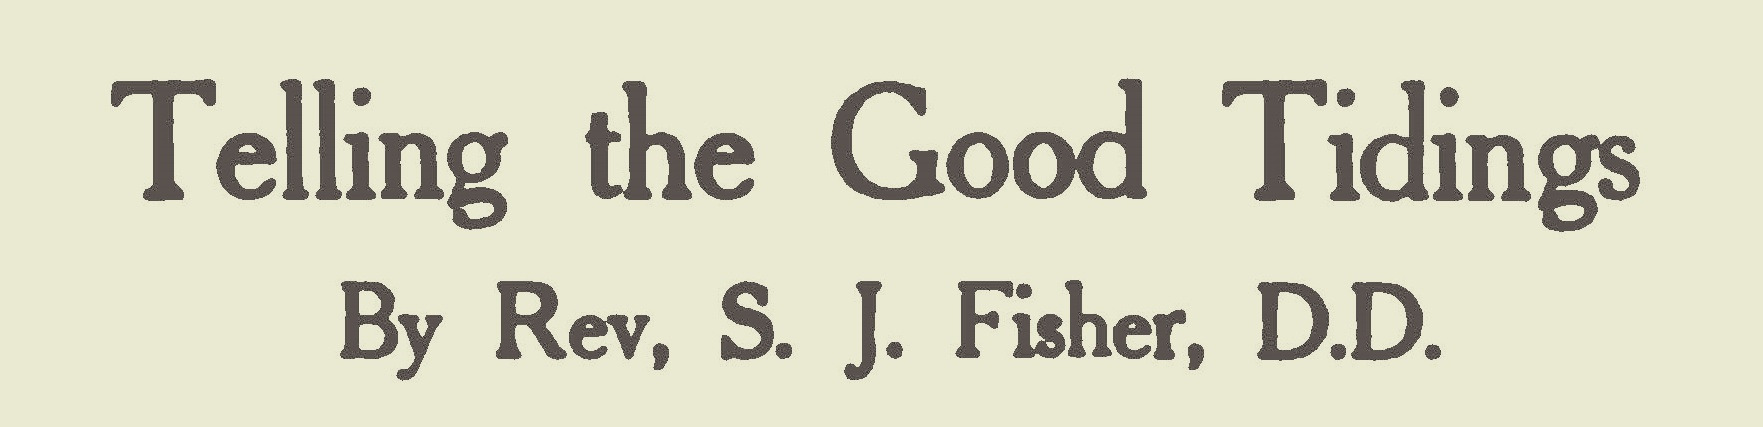 Fisher, Samuel Jackson, Telling the Good Tidings Title Page.jpg